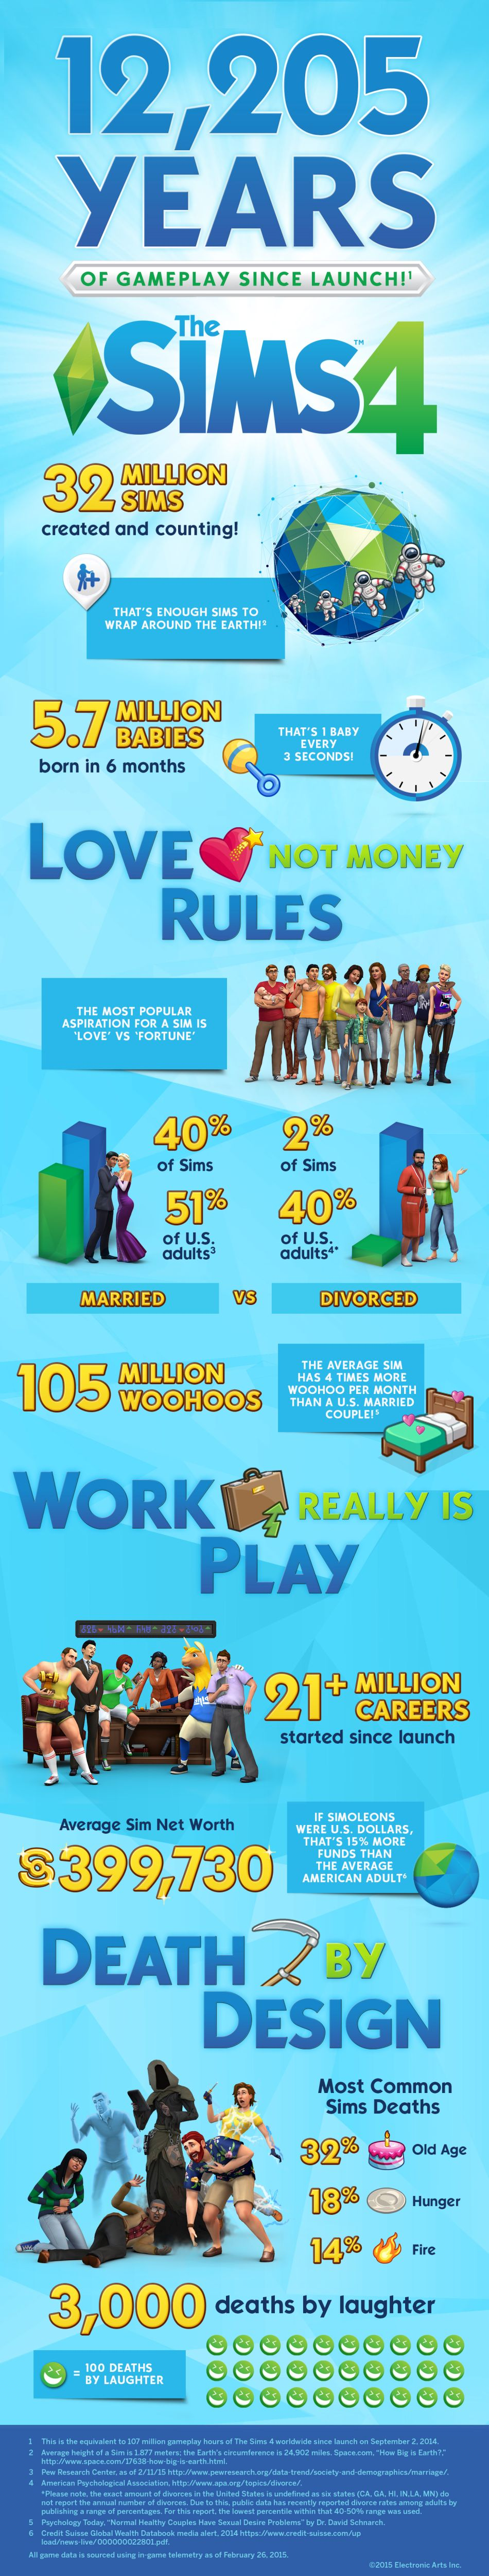 EA_TheSims4_Infographic_Finaljpg